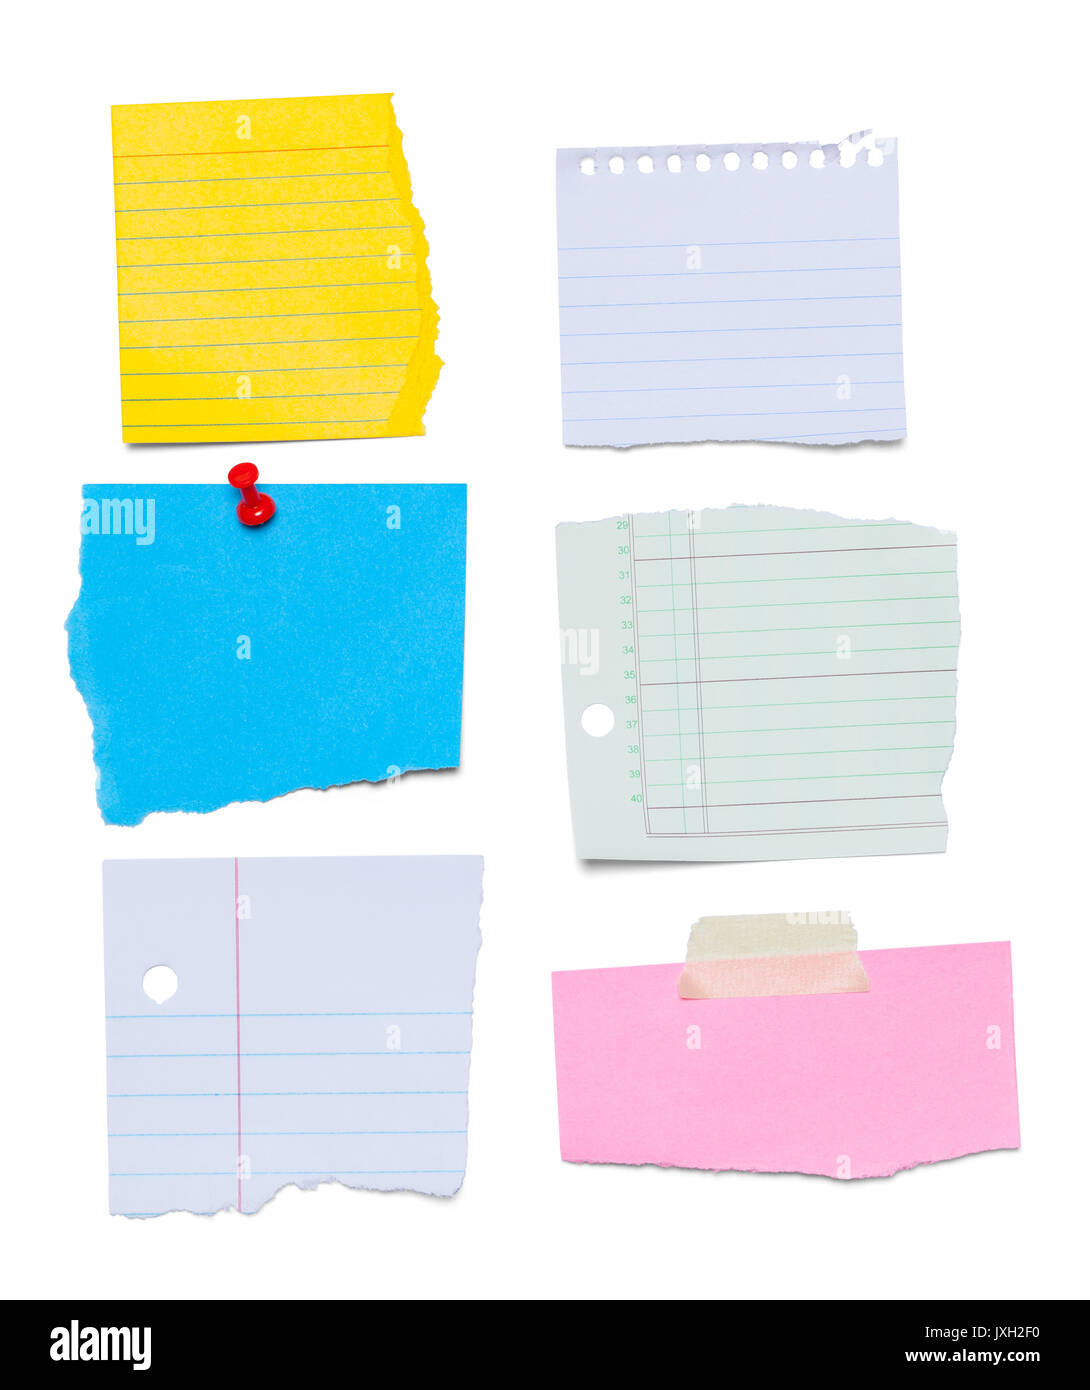 Torn Paper Note Scraps Isolated on White Background. - Stock Image